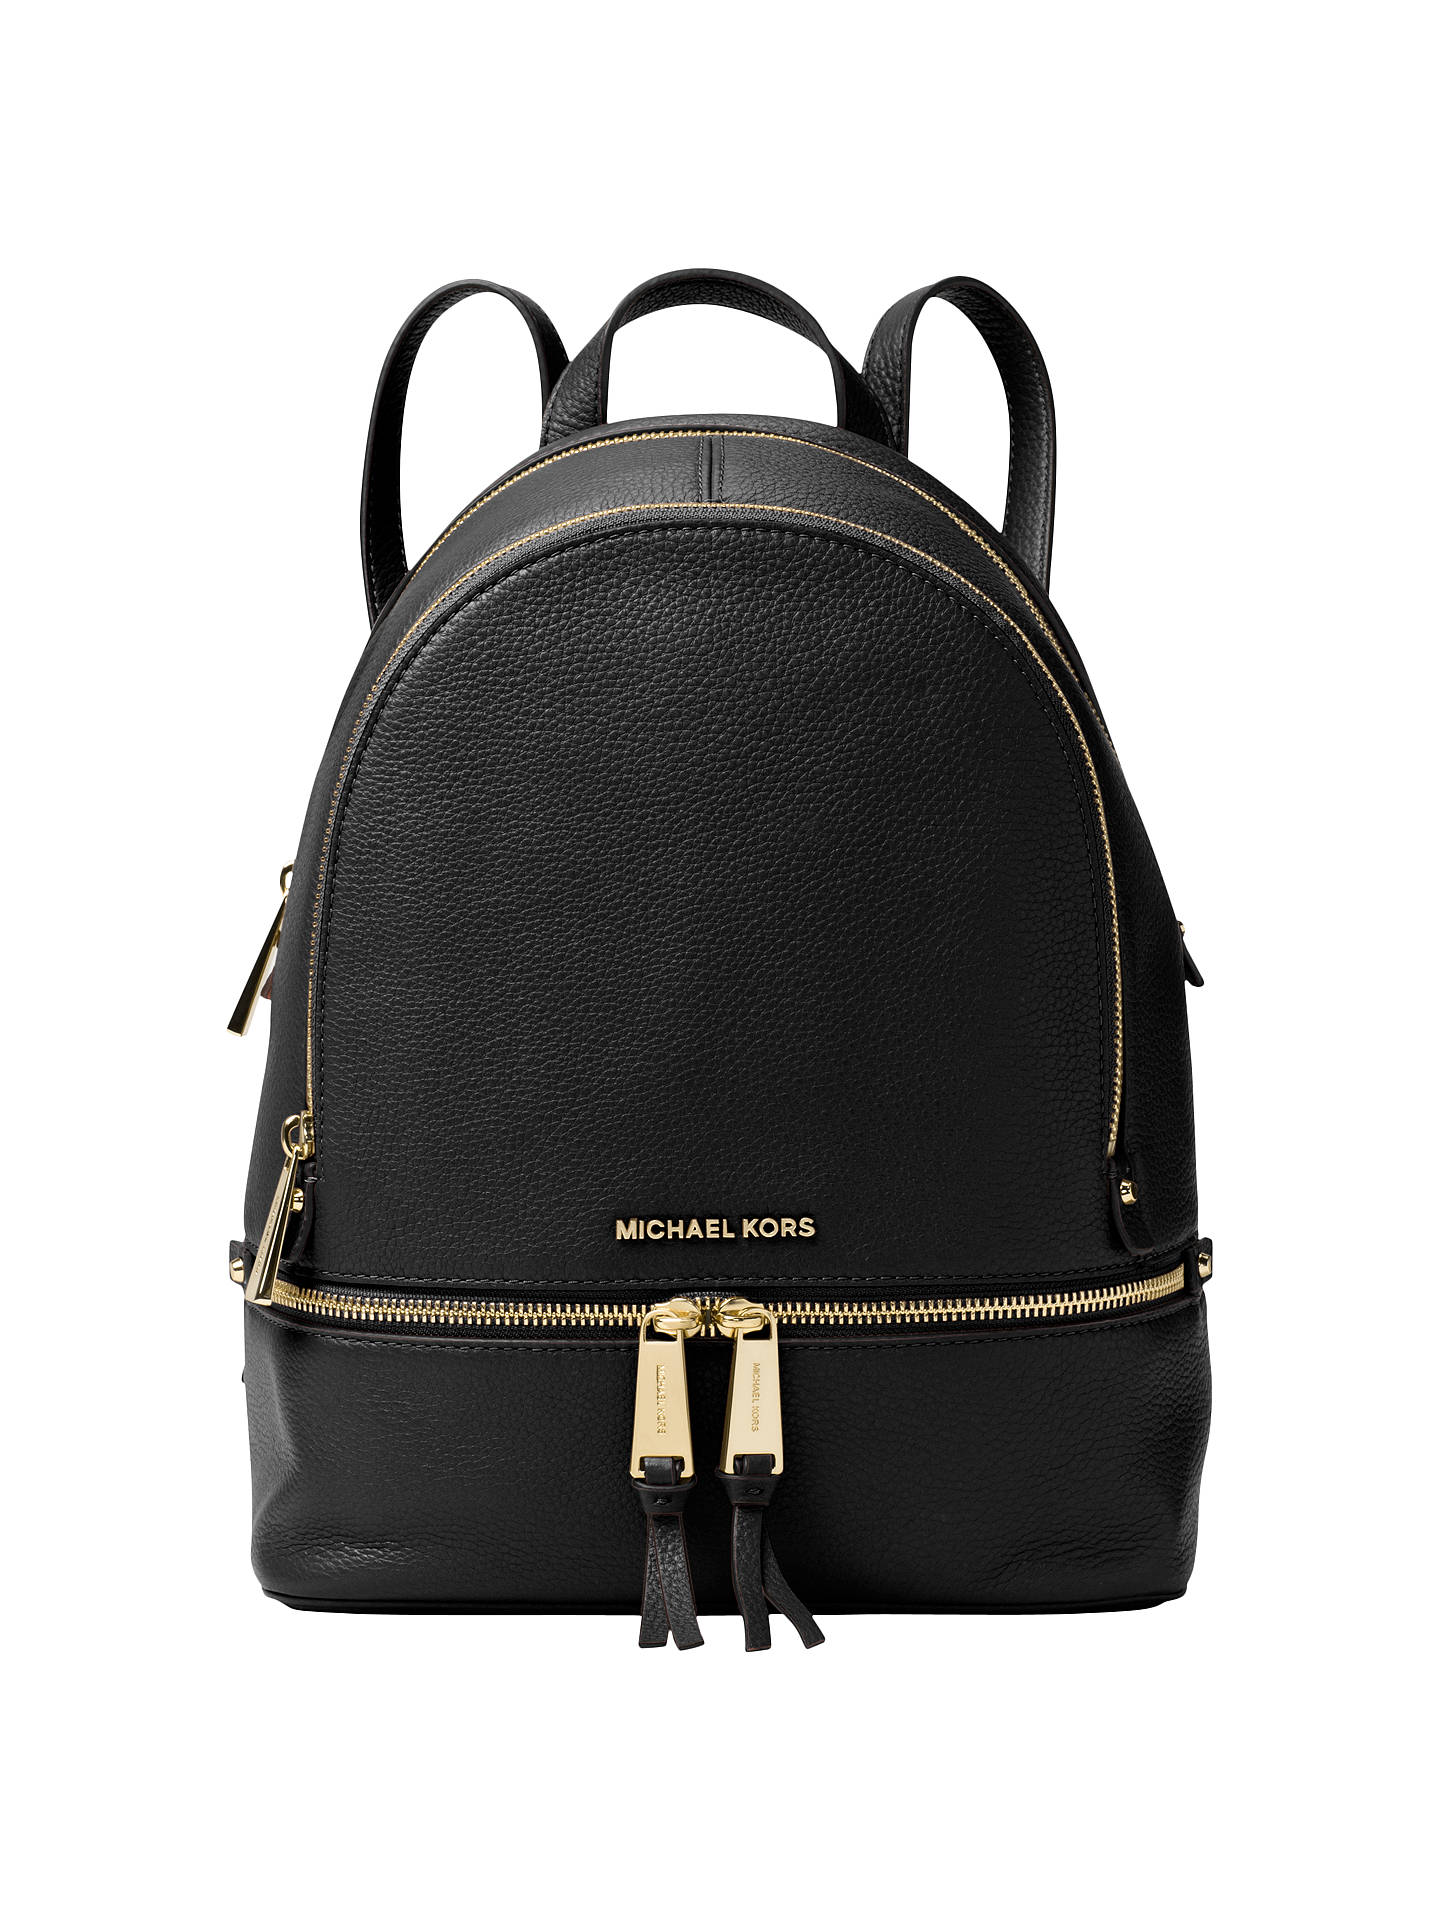 37c10341677c Buy MICHAEL Michael Kors Rhea Leather Backpack, Black Online at  johnlewis.com ...